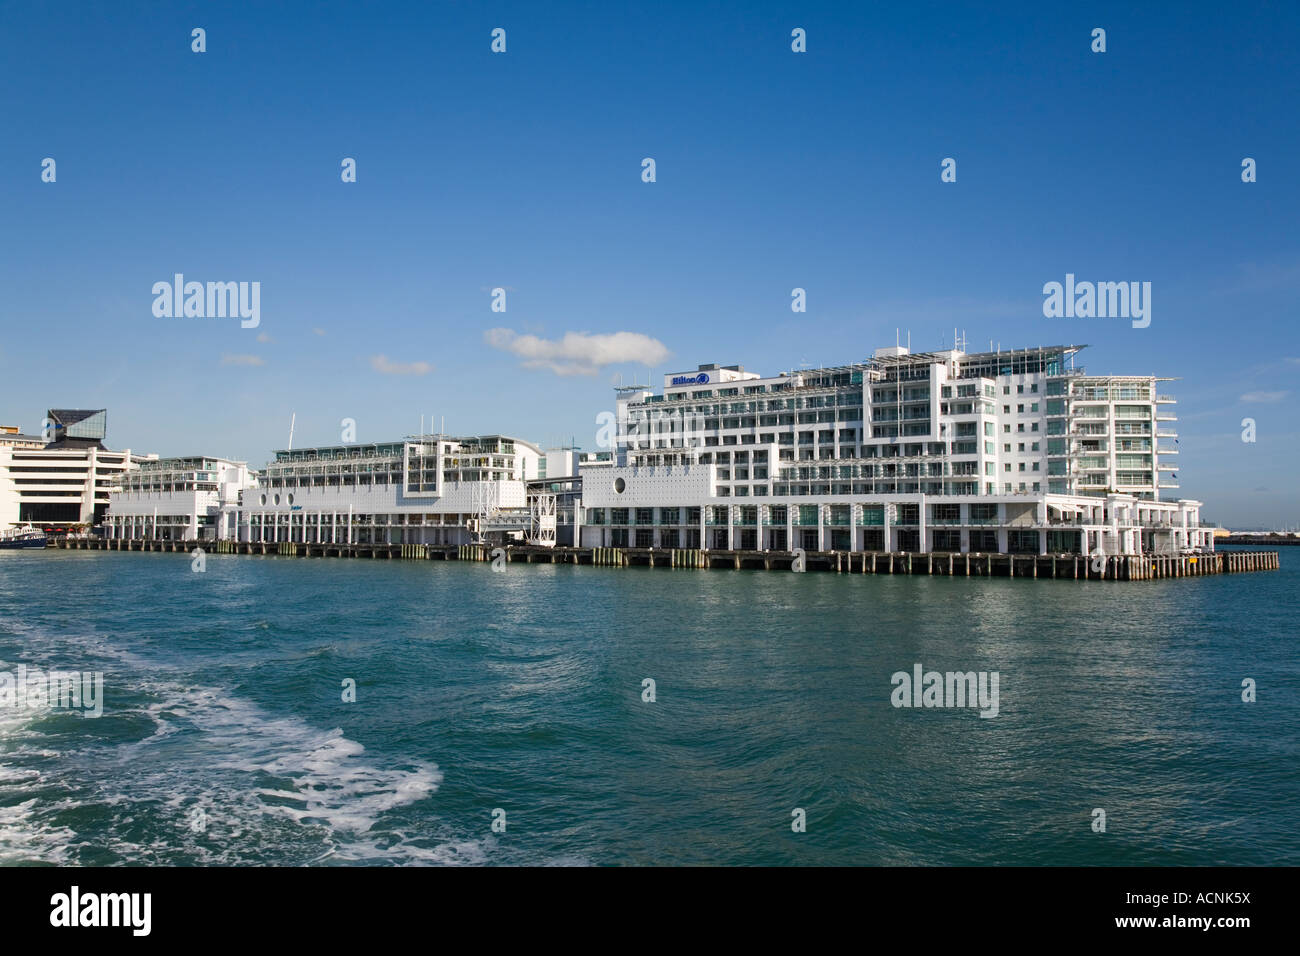 Wharf redeveloped with Hilton Hotel and Overseas Passenger Terminal cruise ship berth on eastern waterfront Waitemata - Stock Image